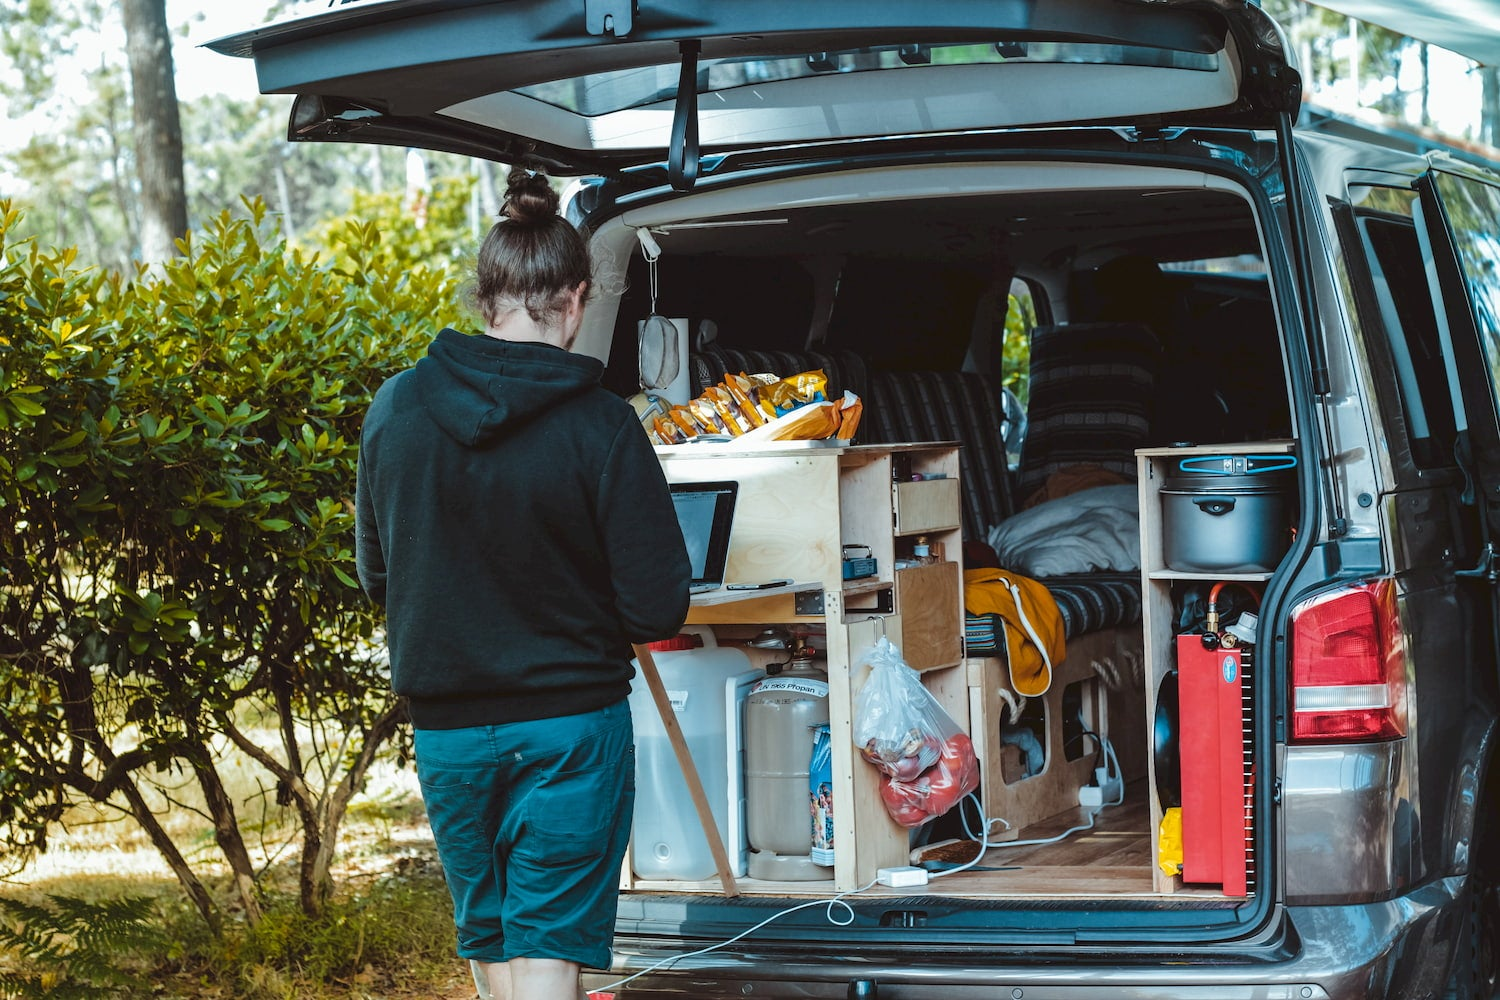 Van lifer using their laptop in their built out van kitchen.